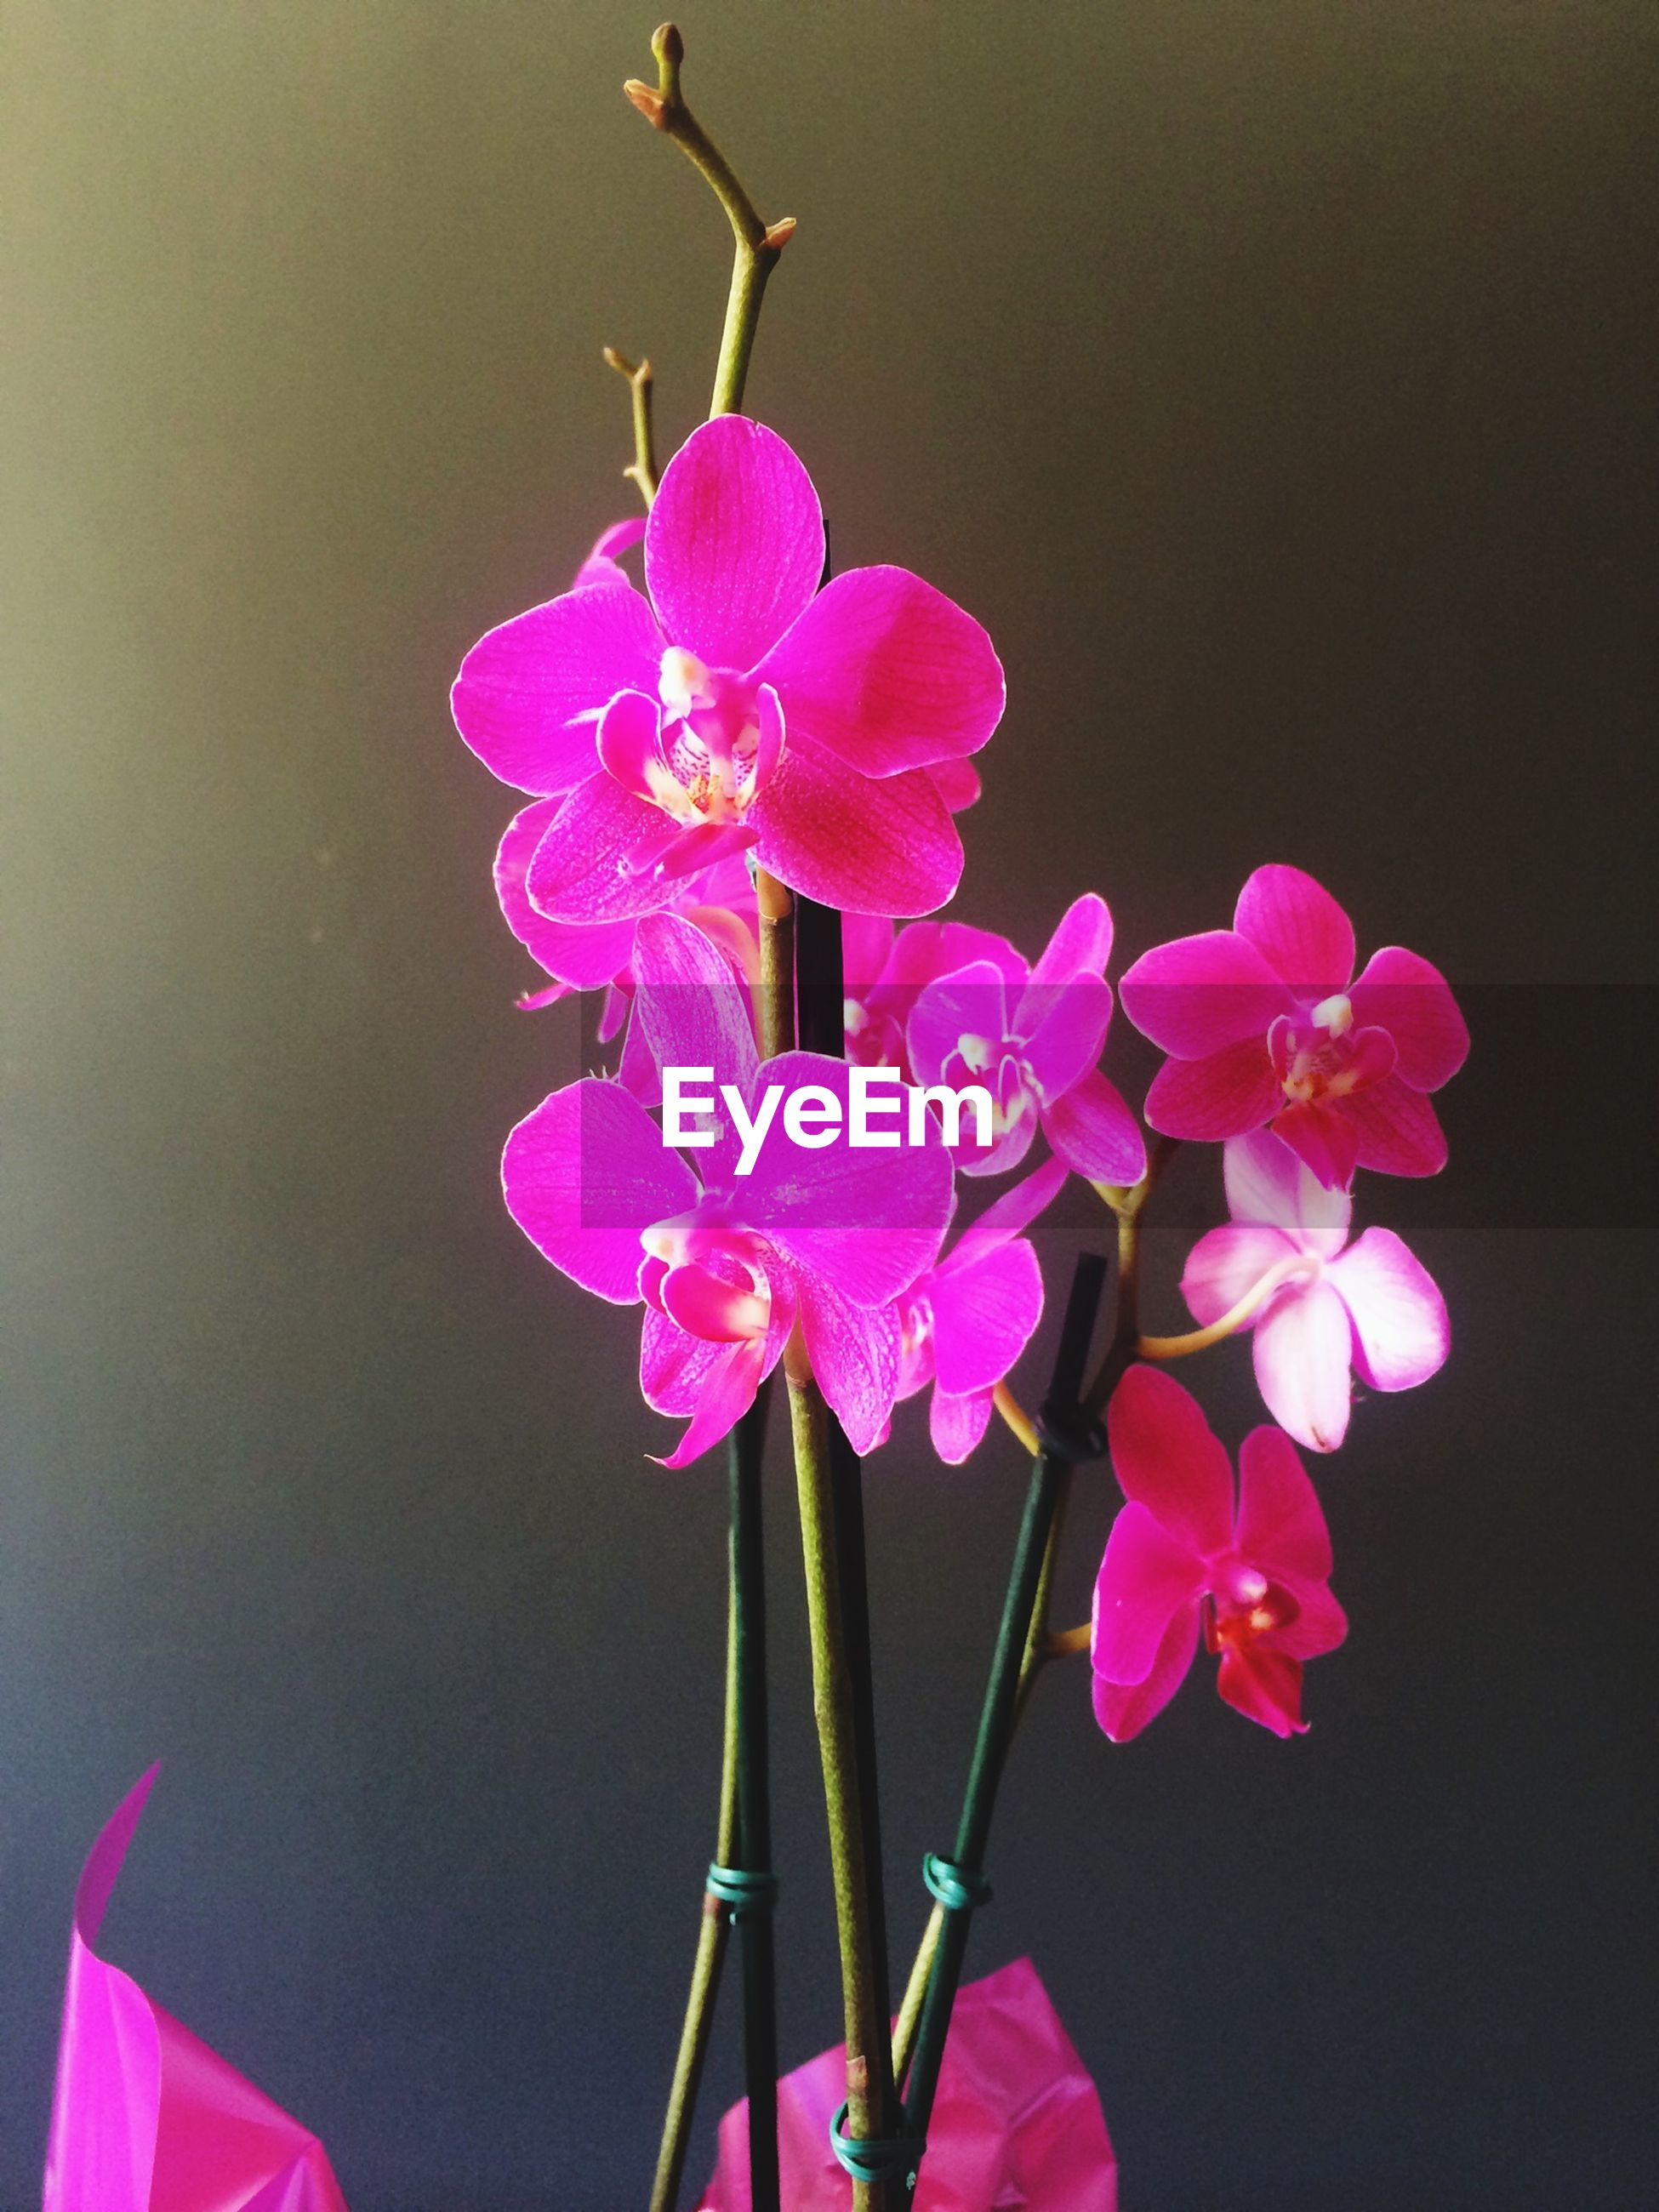 flower, freshness, fragility, petal, pink color, beauty in nature, close-up, growth, flower head, nature, purple, stem, focus on foreground, blooming, bud, plant, in bloom, pink, no people, copy space